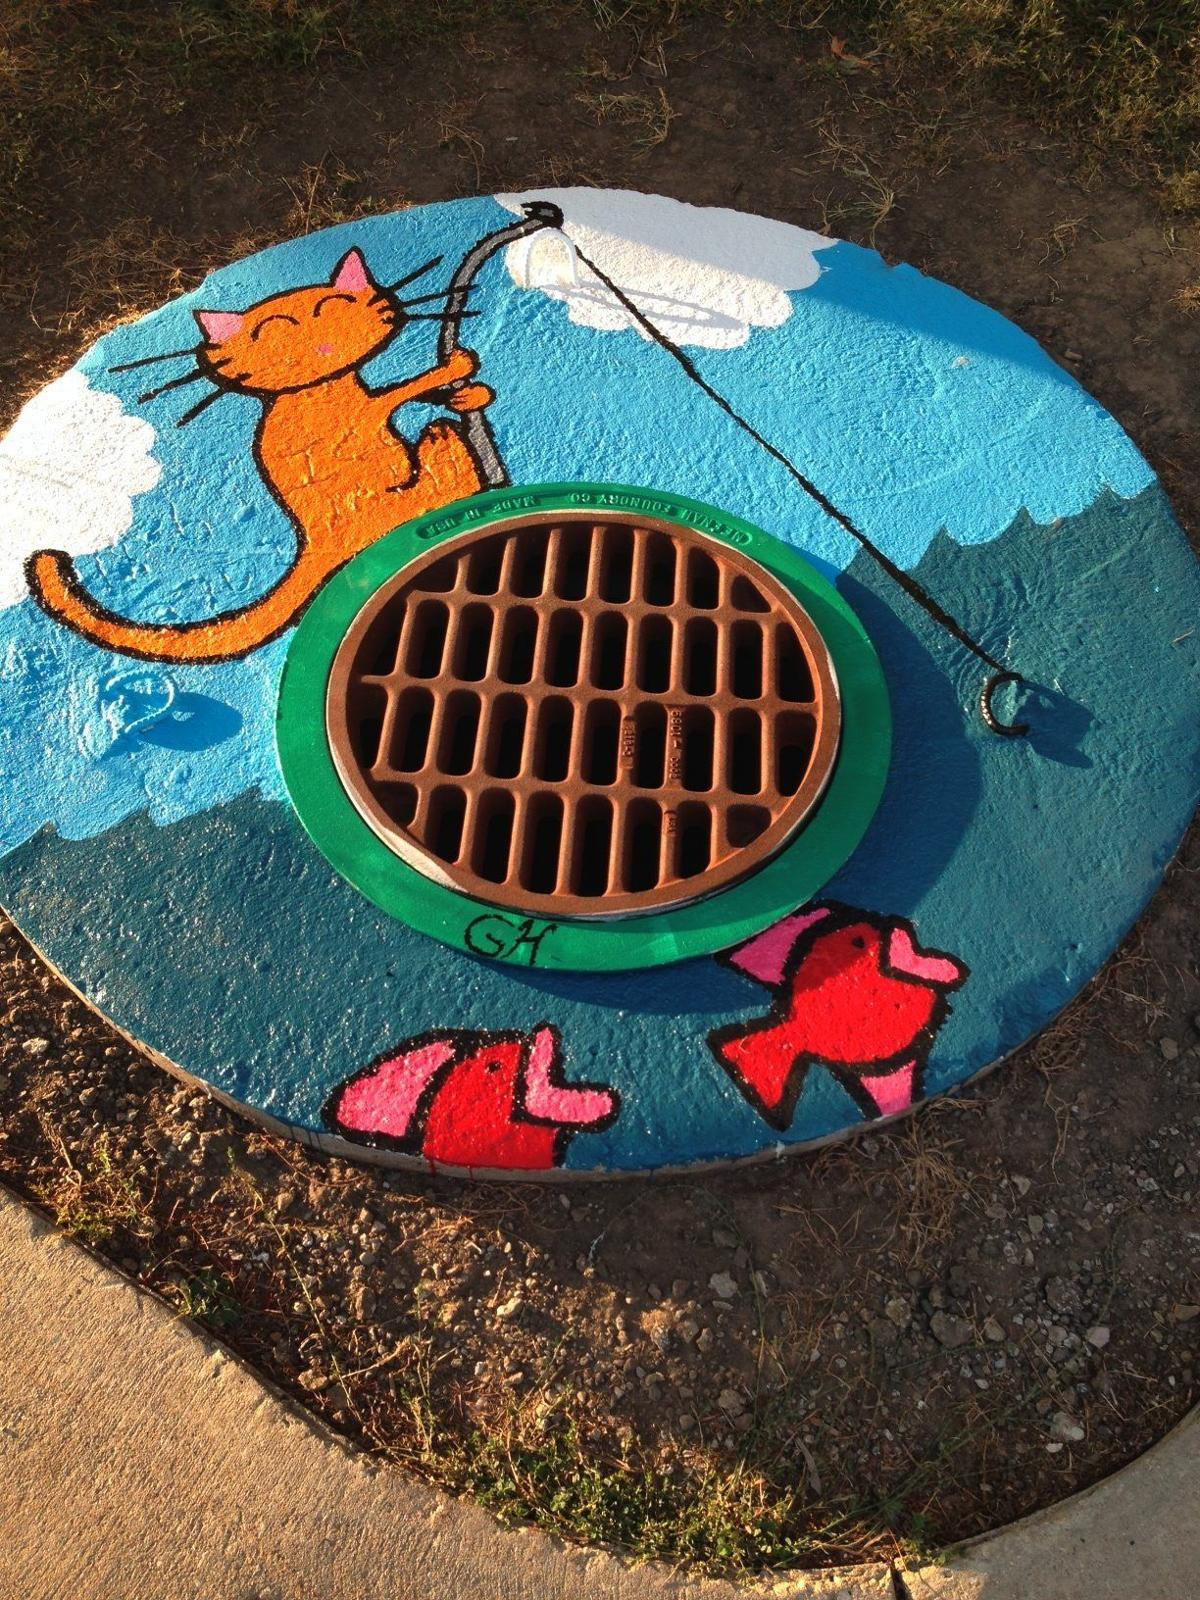 Storm drain artwork sends a clear message: Rainwater only